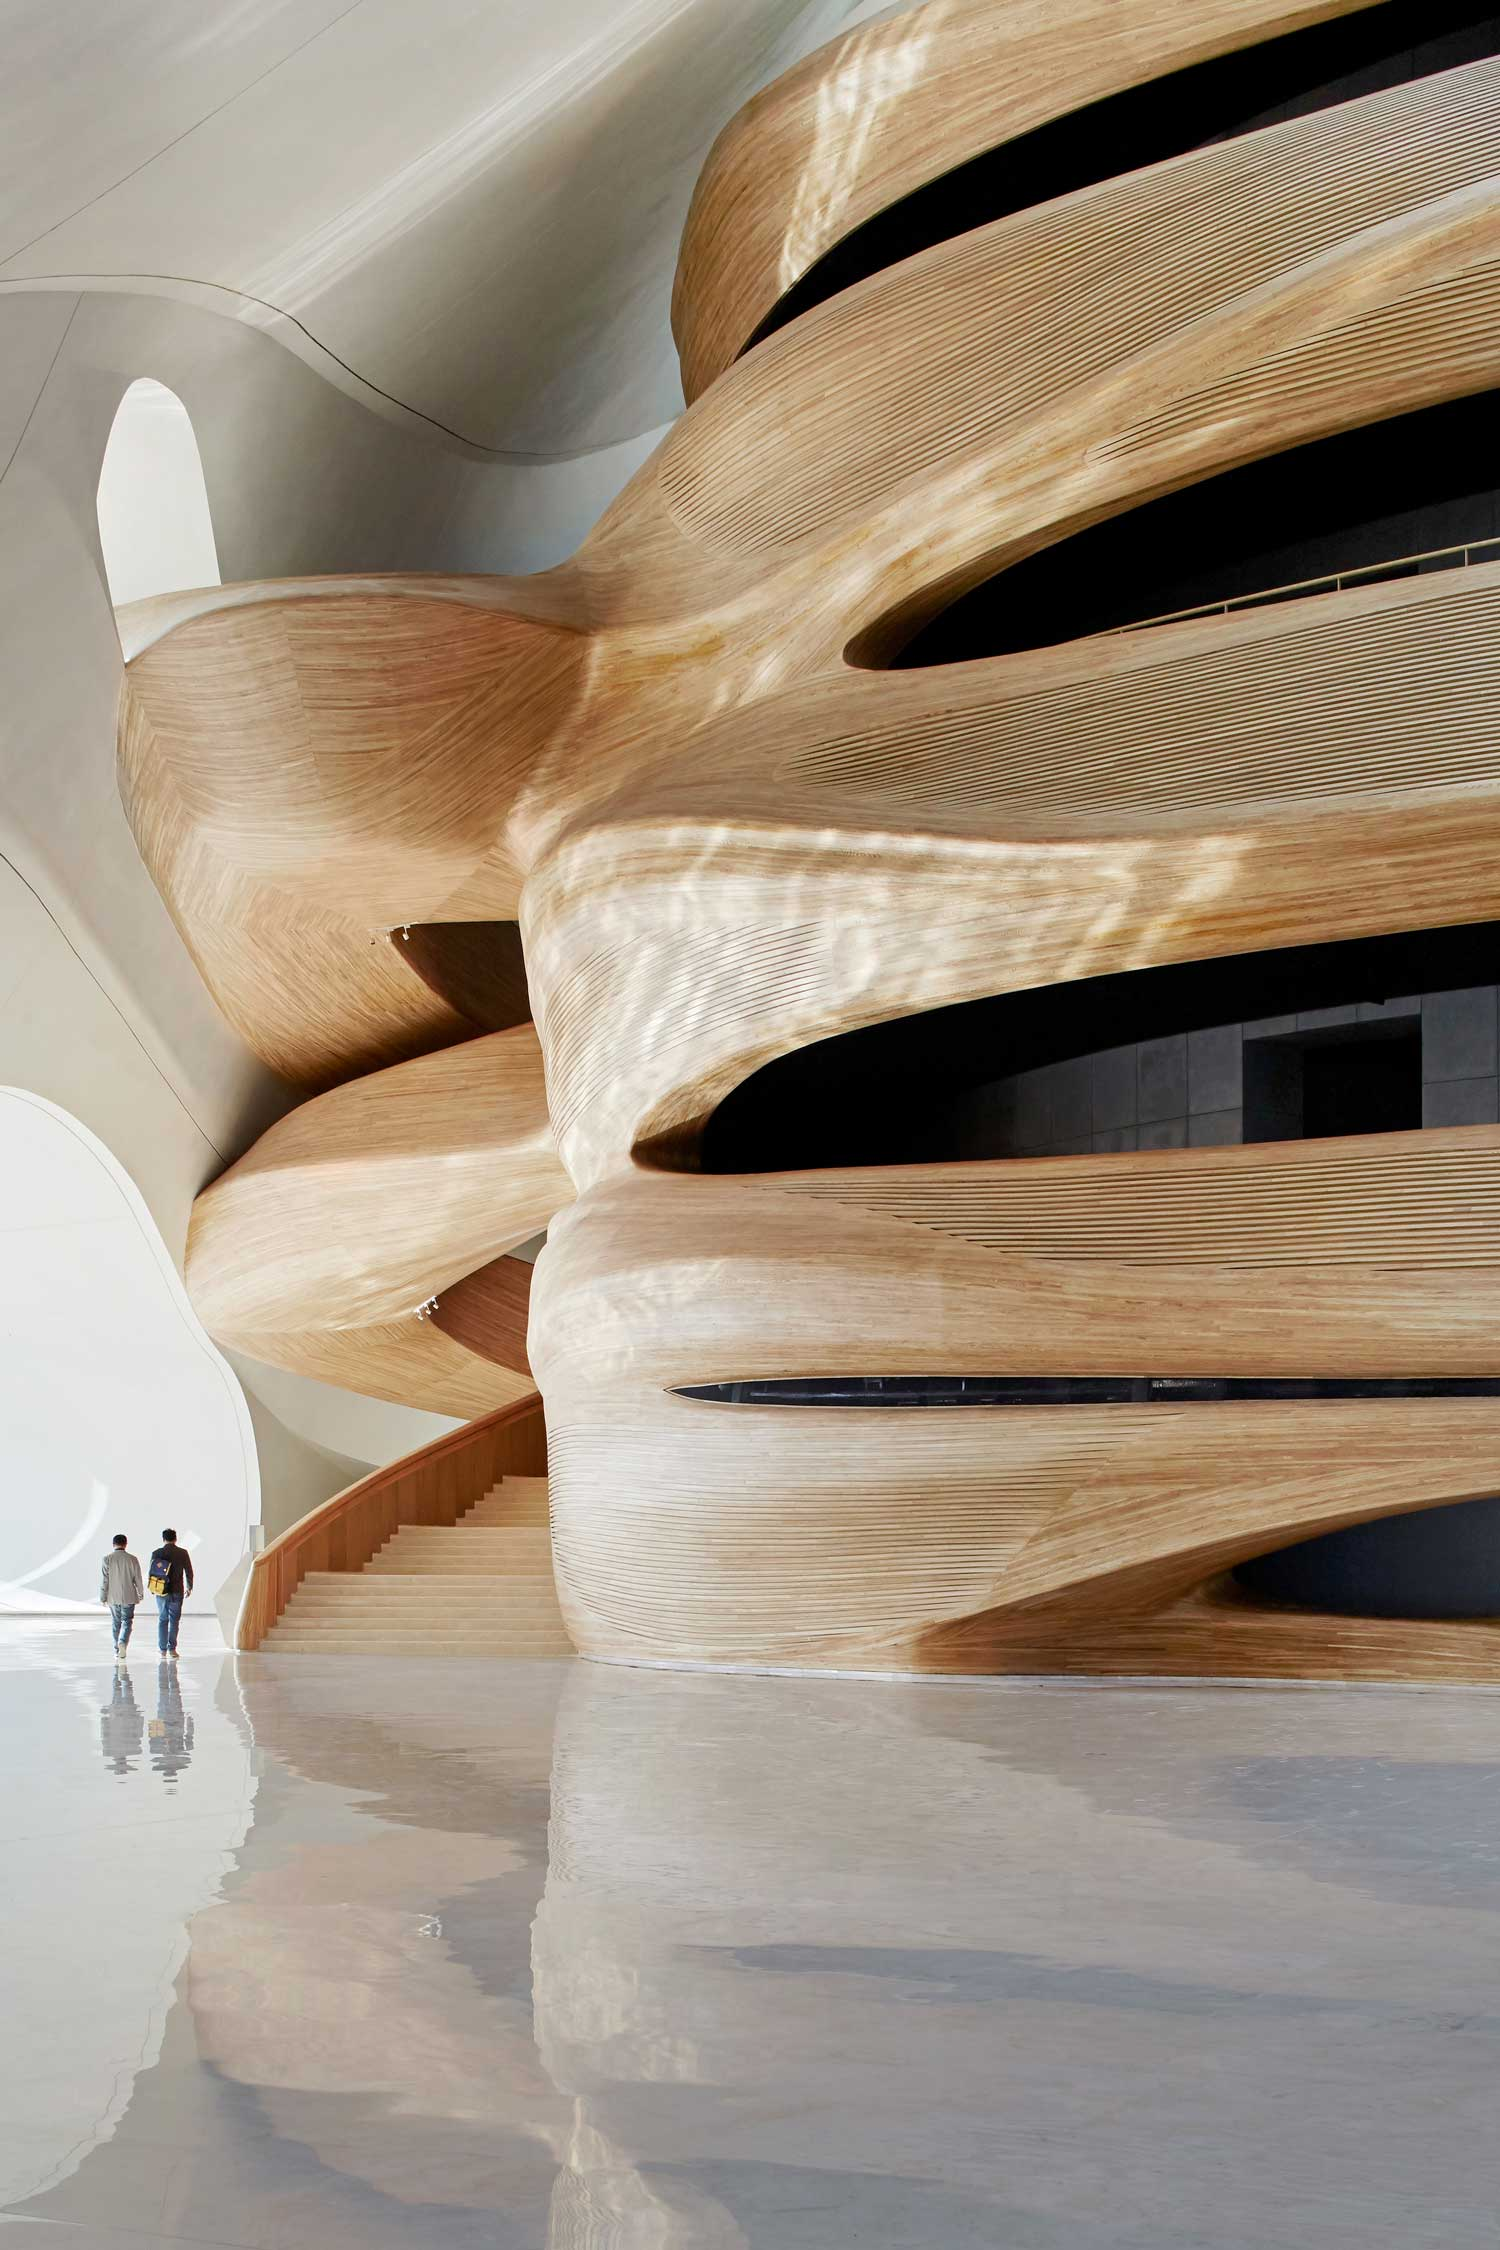 Curvaceous wood Chinese opera house